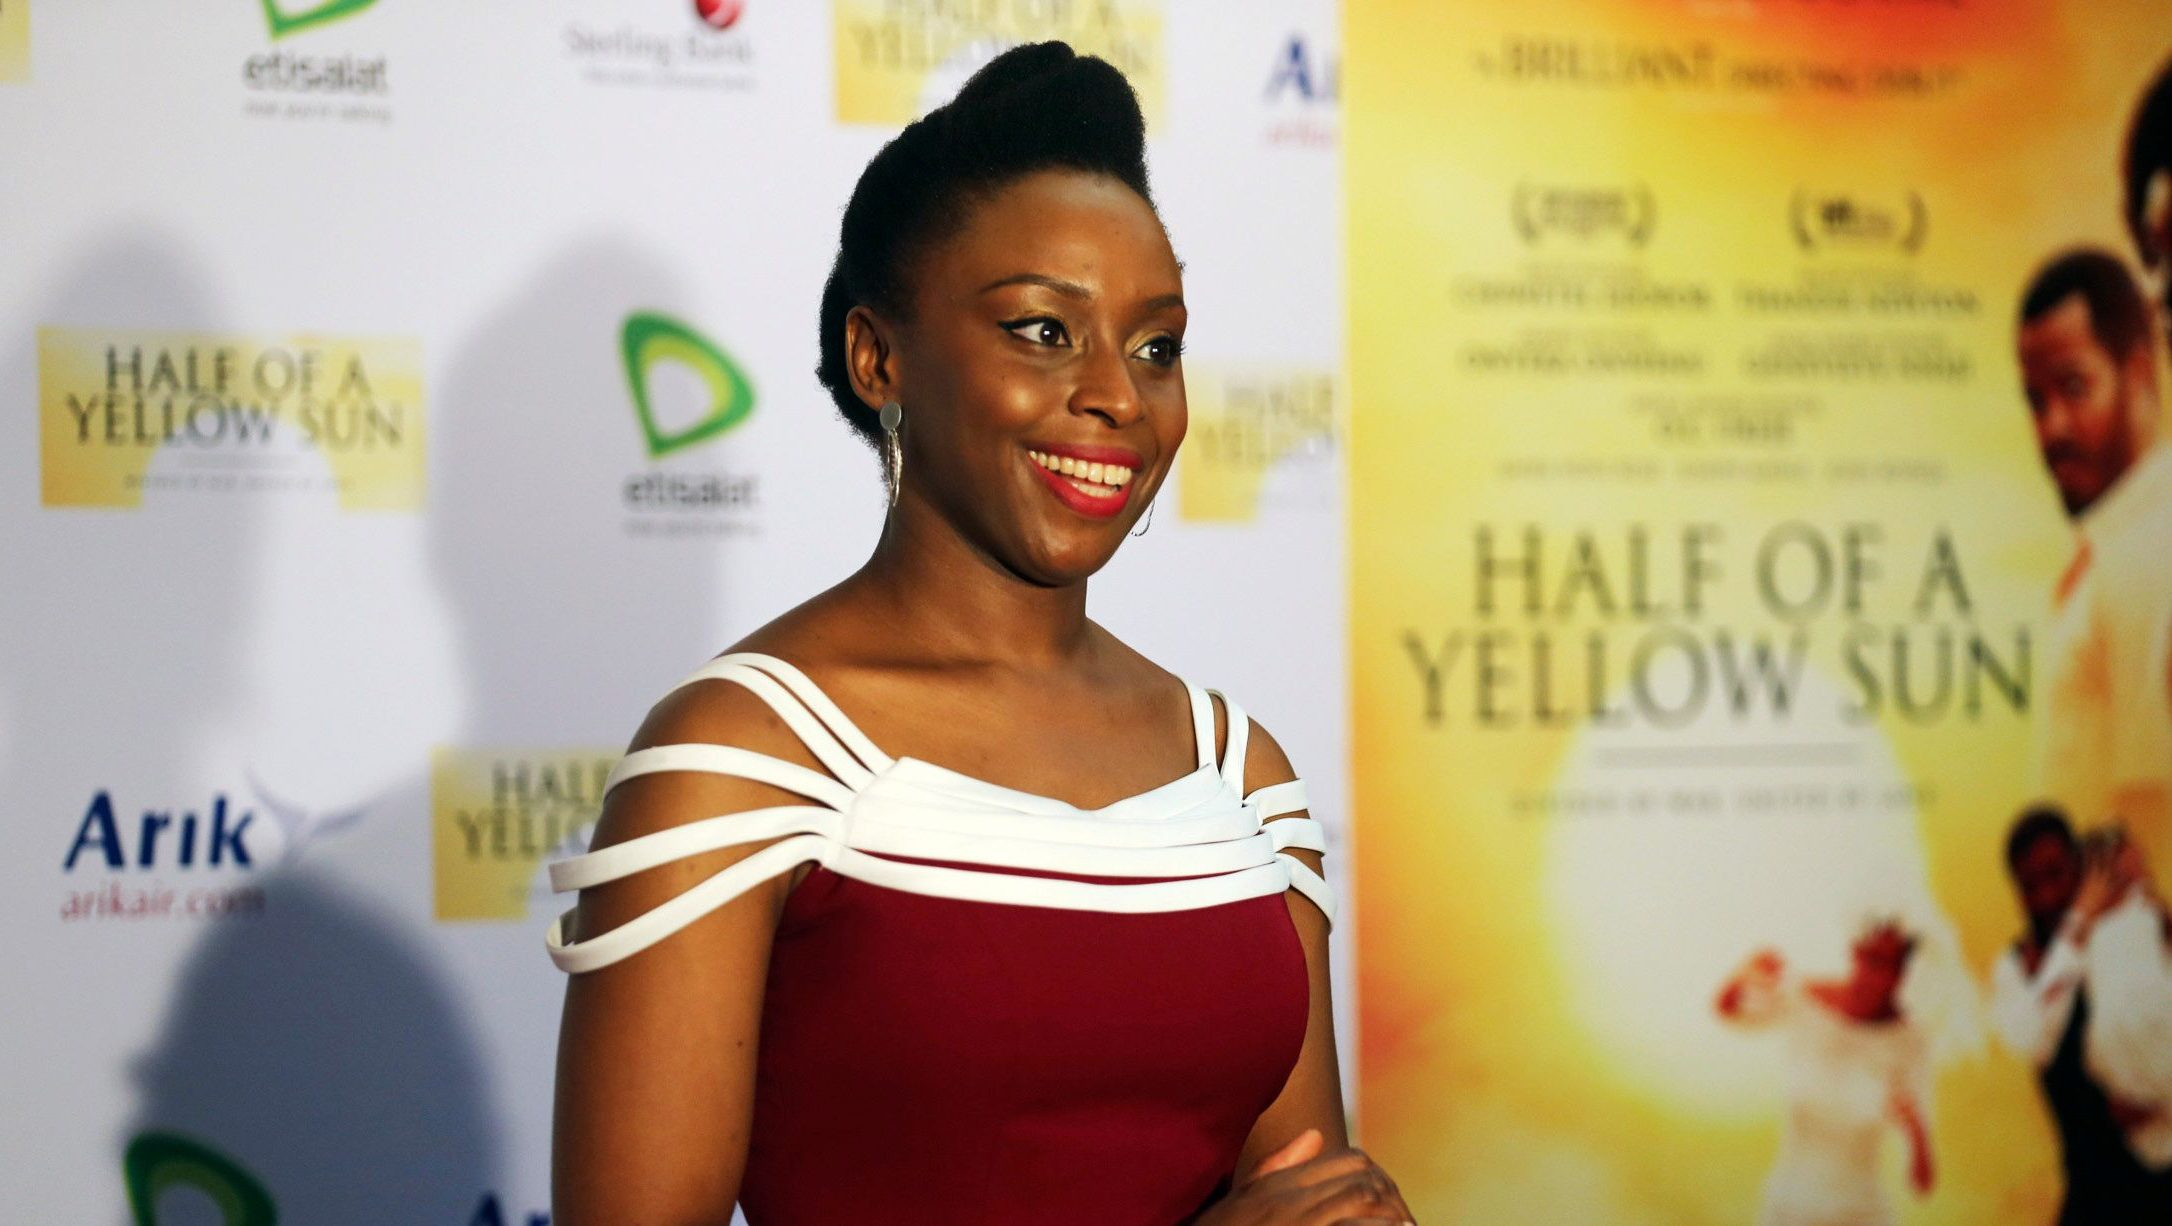 """Nigerian novelist Chimamanda Ngozi Adichie arrives for the premier of film """"Half of a Yellow Sun"""", an adaptation of her book, in Lagos April 12, 2014."""